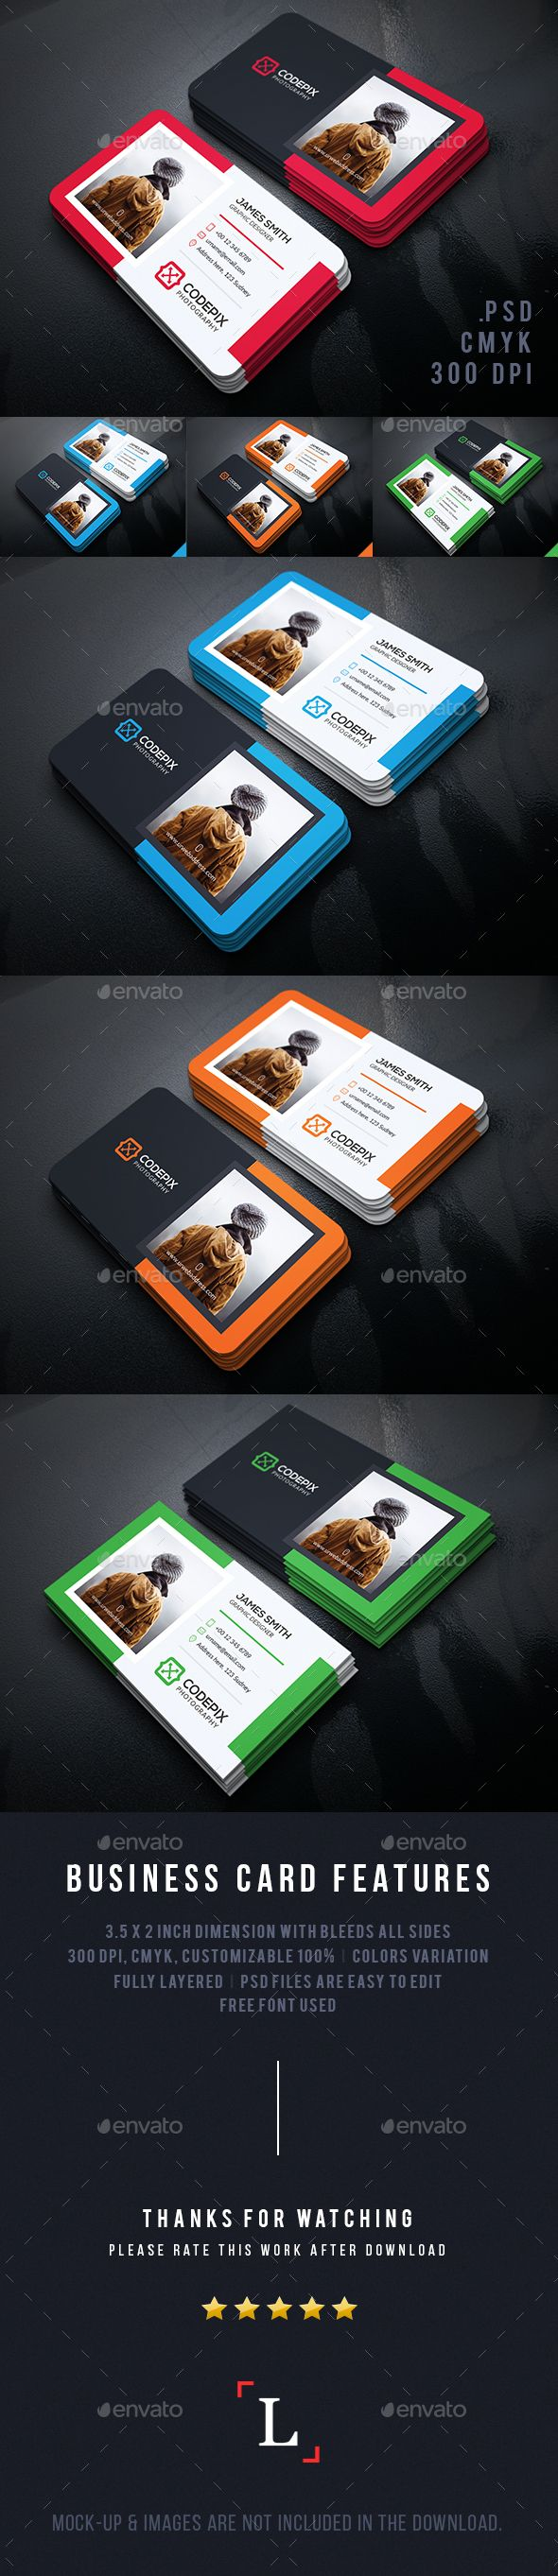 Personal Photography Business Card — Photoshop PSD #simple #dark • Available here → https://graphicriver.net/item/personal-photography-business-card/13746752?ref=pxcr